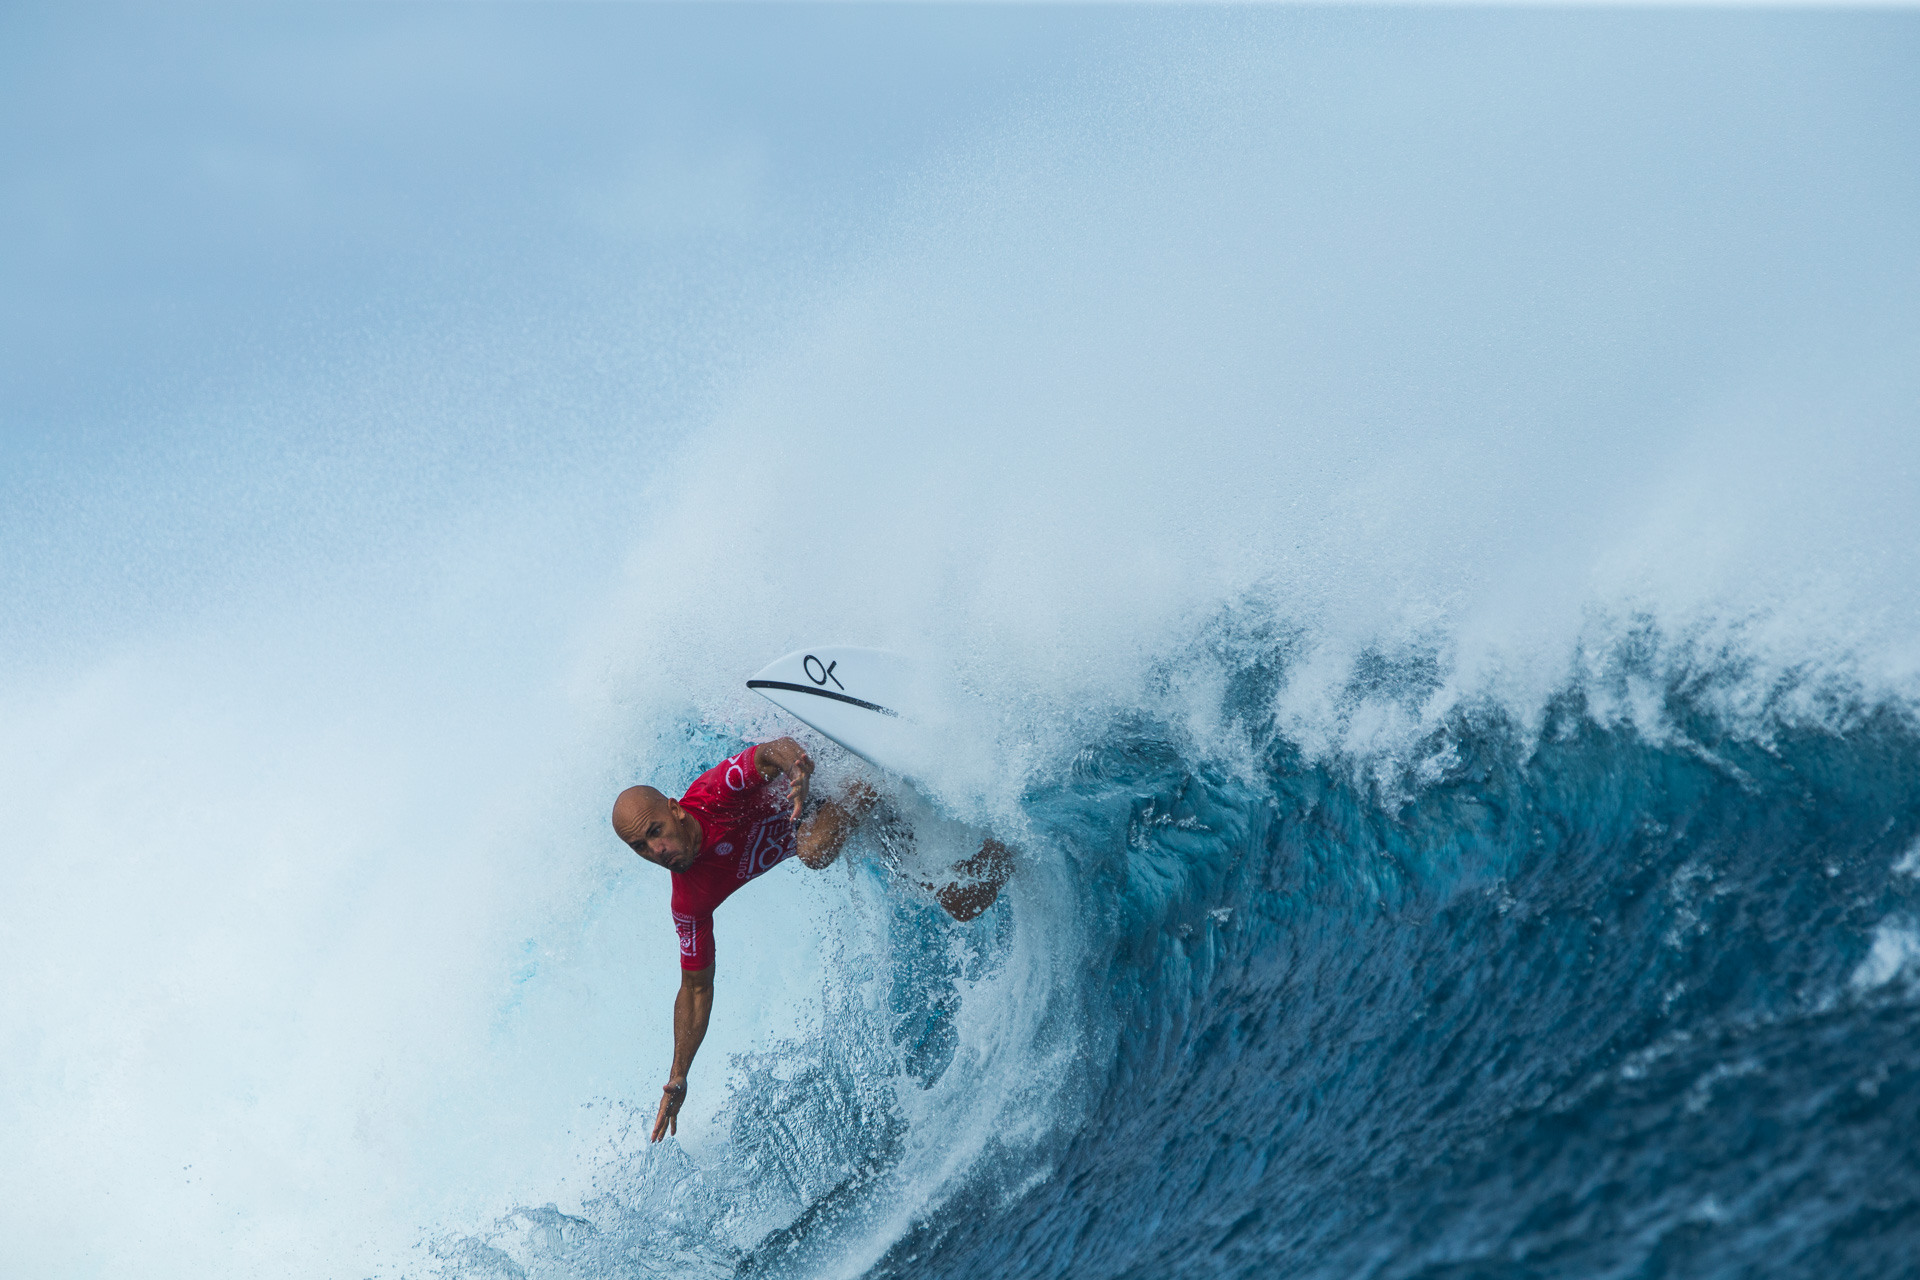 Picture of Kelly Slater on a wave during the 2017 Fiji Pro contest